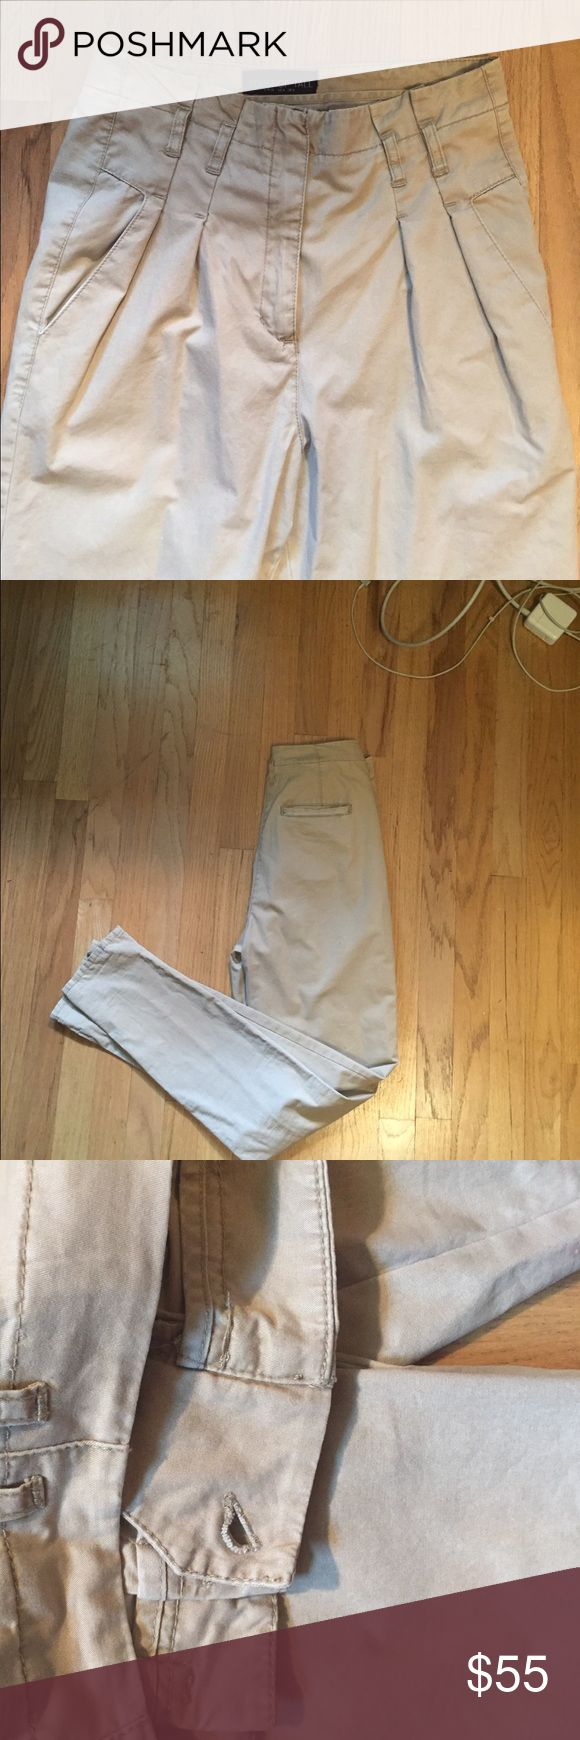 Topshop Tall High Waisted Khakis High waisted pleated khakis from Topshop's Tall collection...there is a button missing on the inside but they zip all the way up & can be easily fixed...FEEL FREE TO MAKE REASONABLE OFFERS! Topshop Pants Skinny